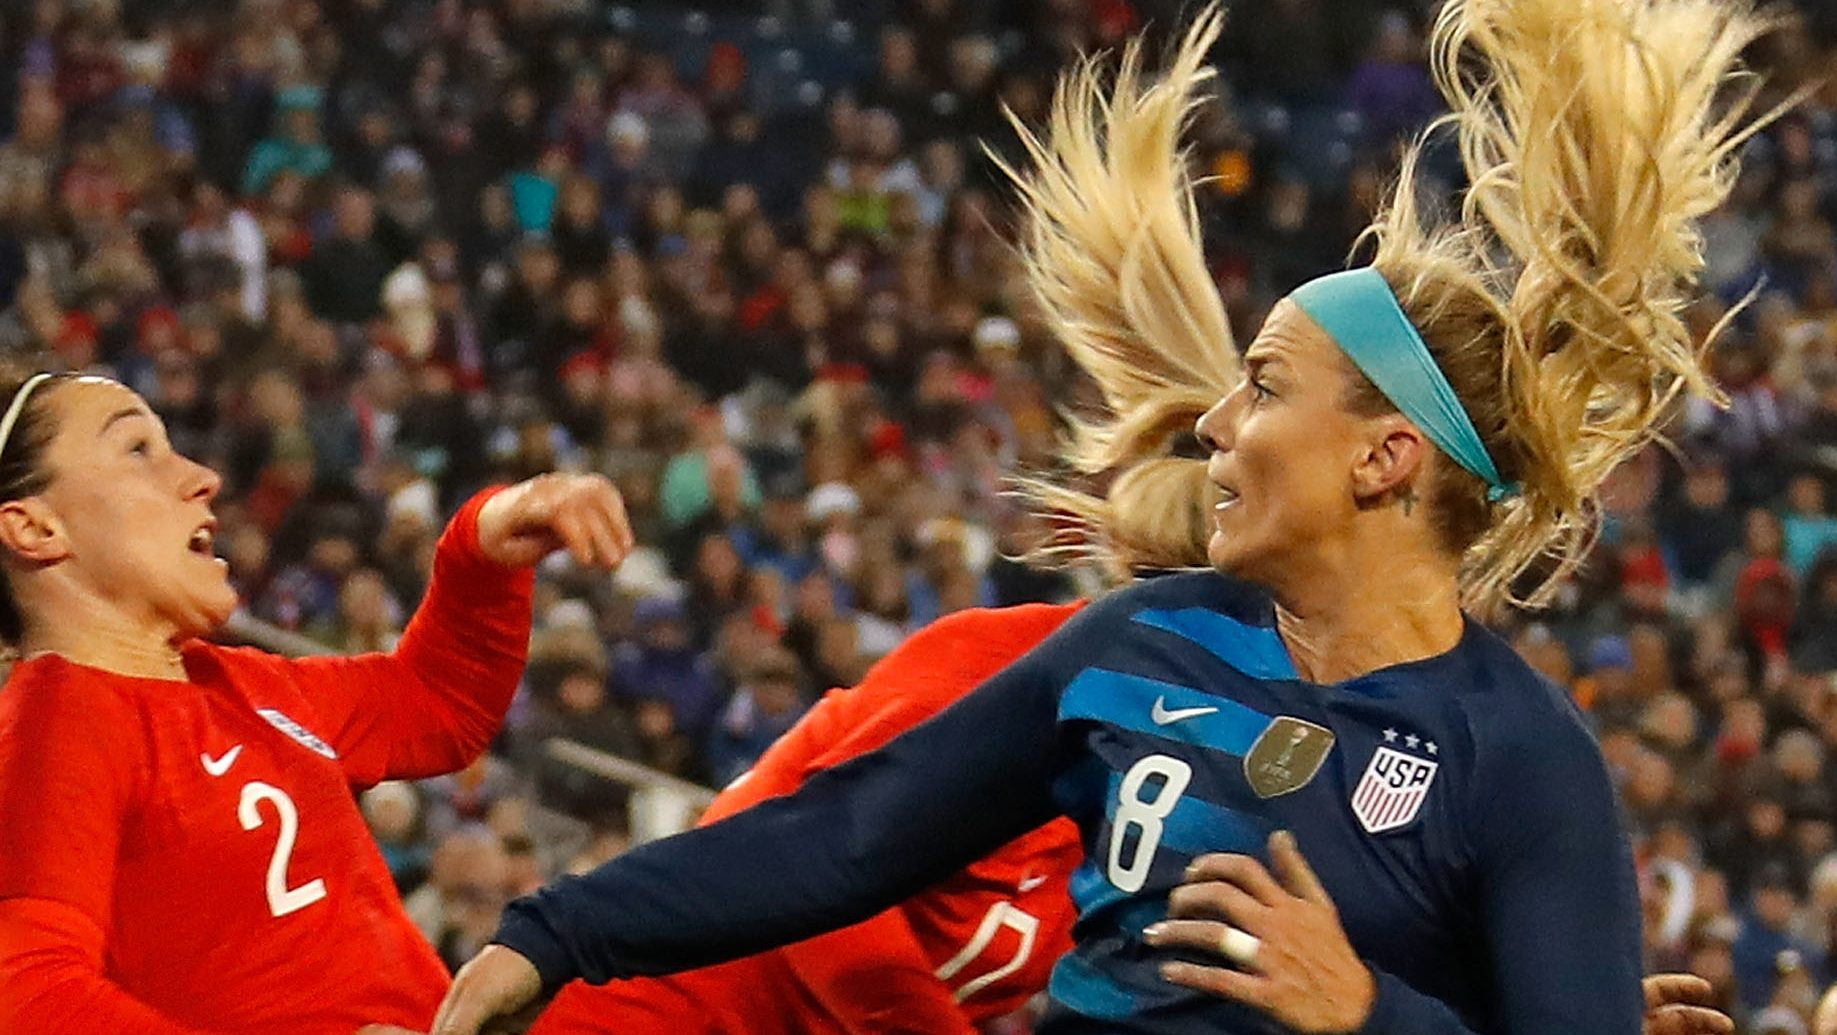 Fifth annual SheBelieves Cup field includes USWNT, England